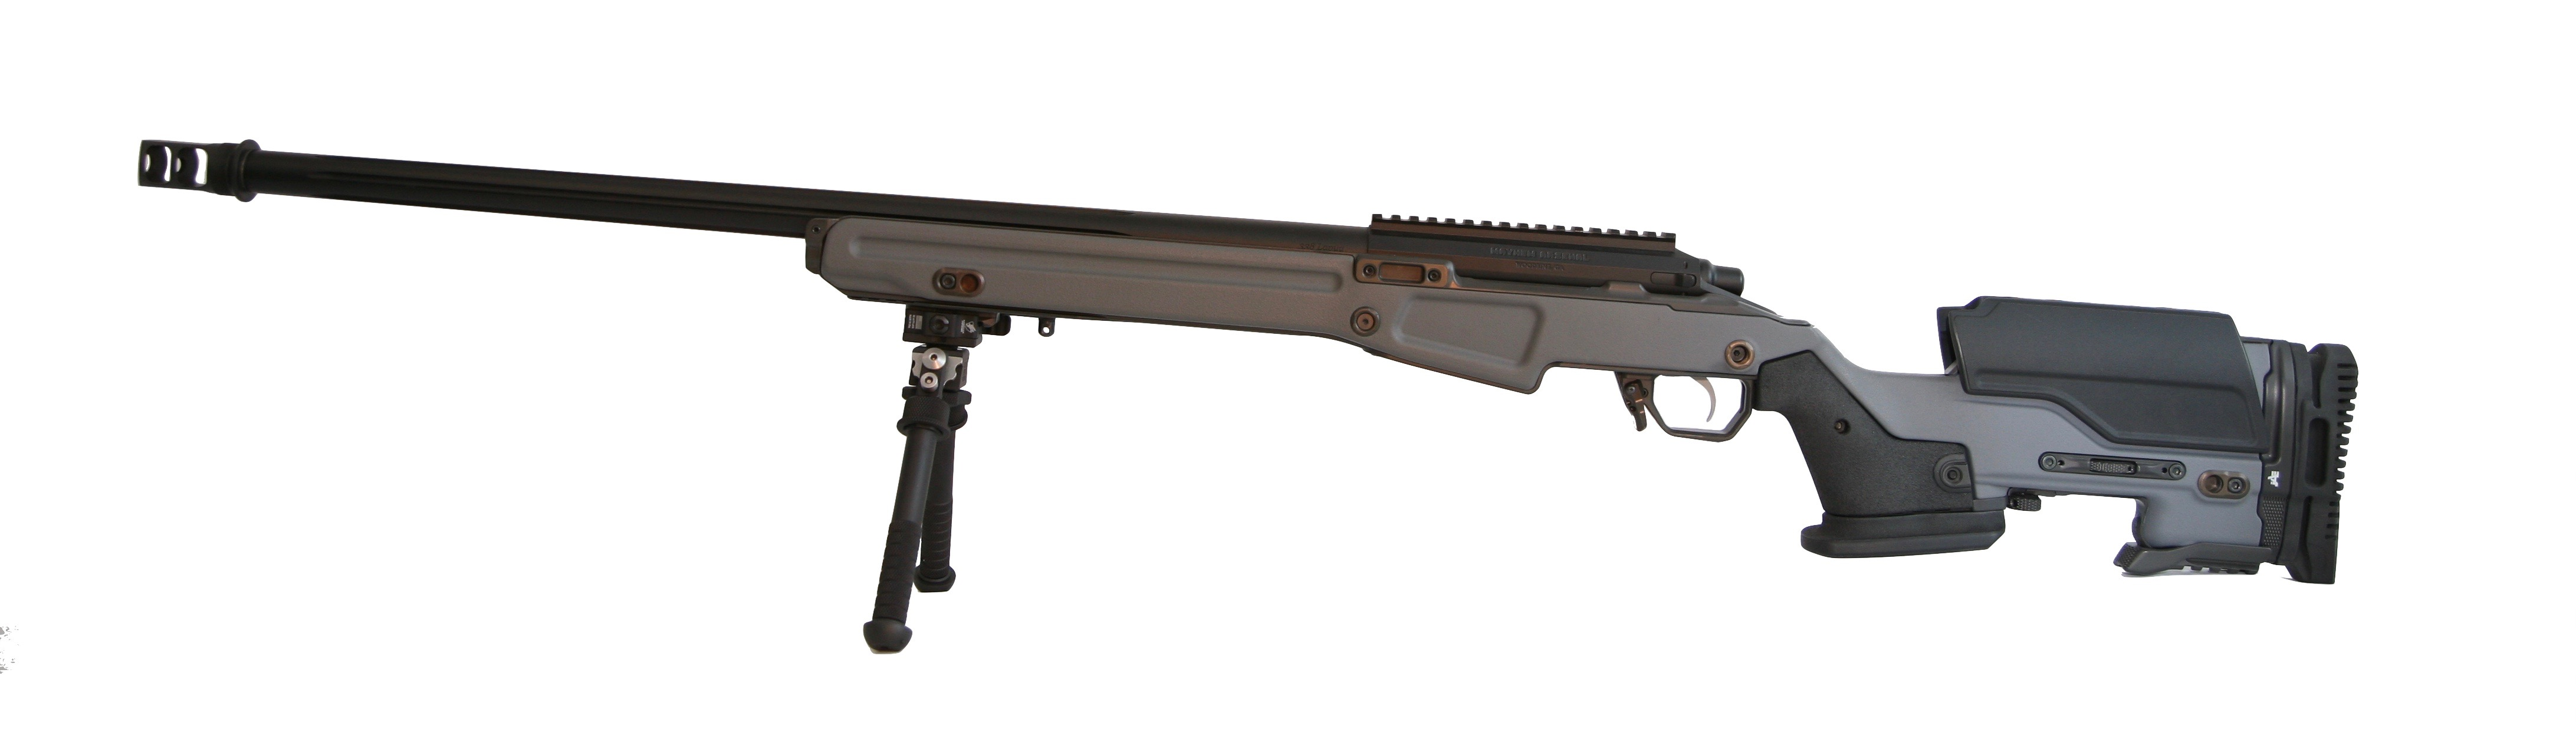 M0019 Precision Rifle Series rifles